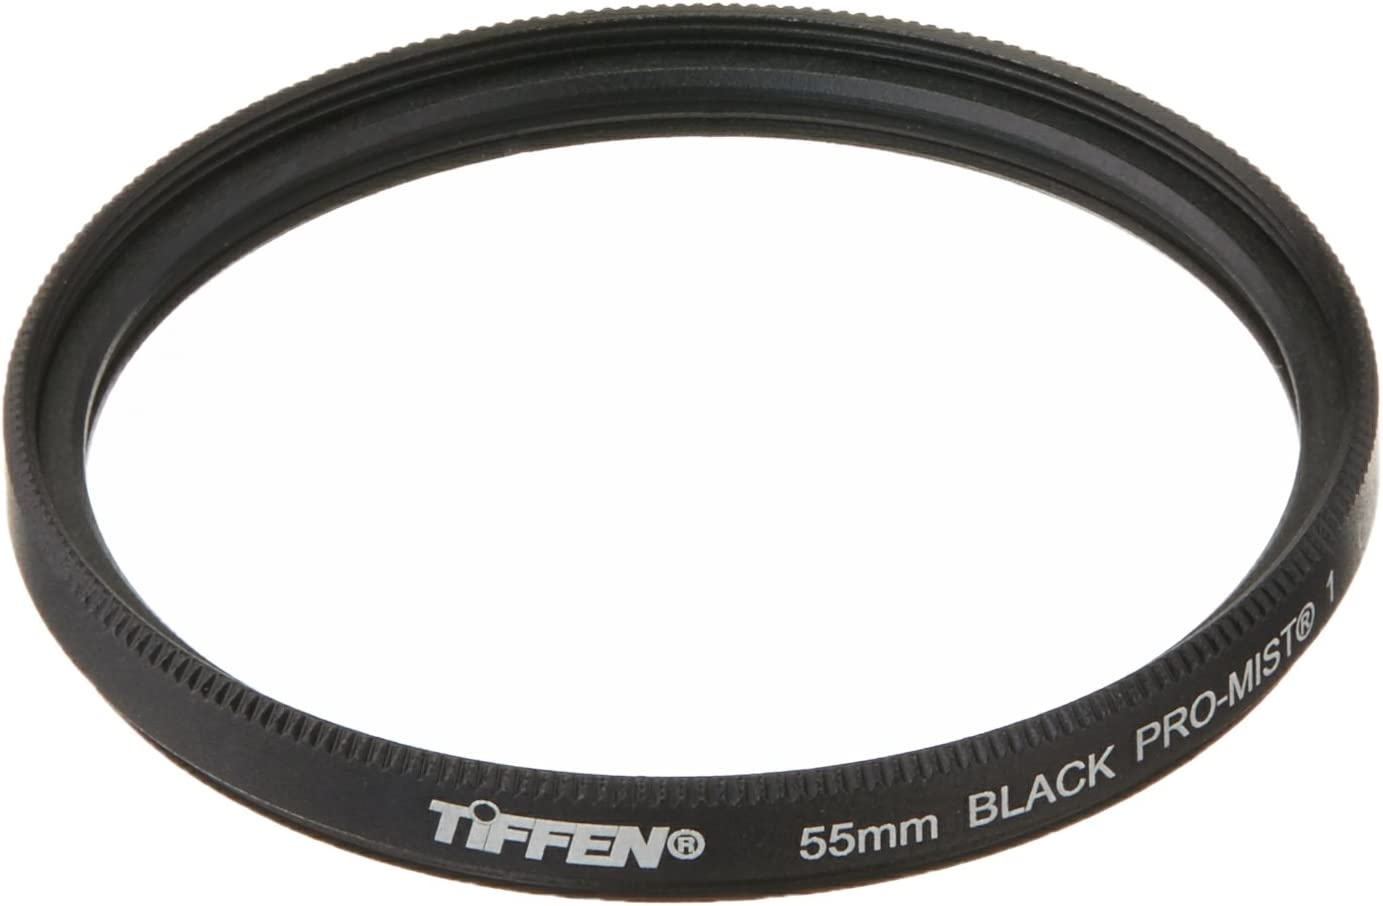 Tiffen 52BPM1 52mm Black Pro-Mist 1 Filter